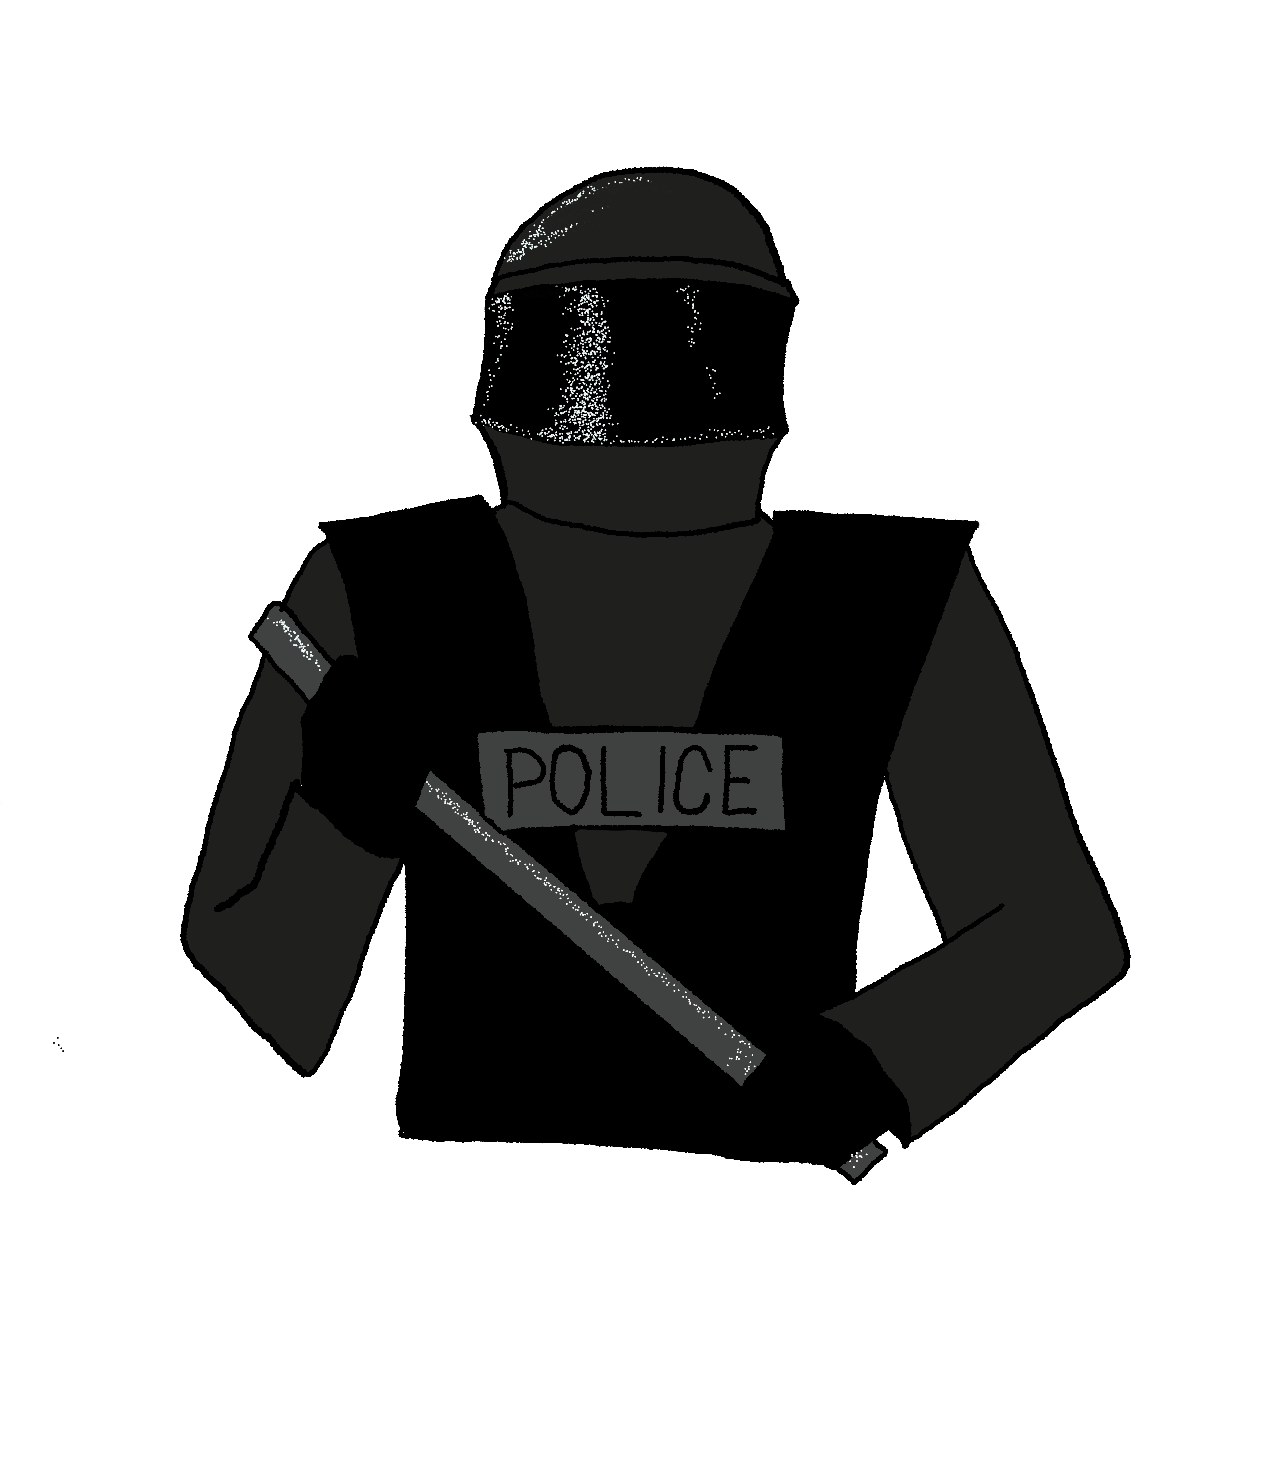 illustration of a police officer dressed in all black SWAT gear holding a baton.